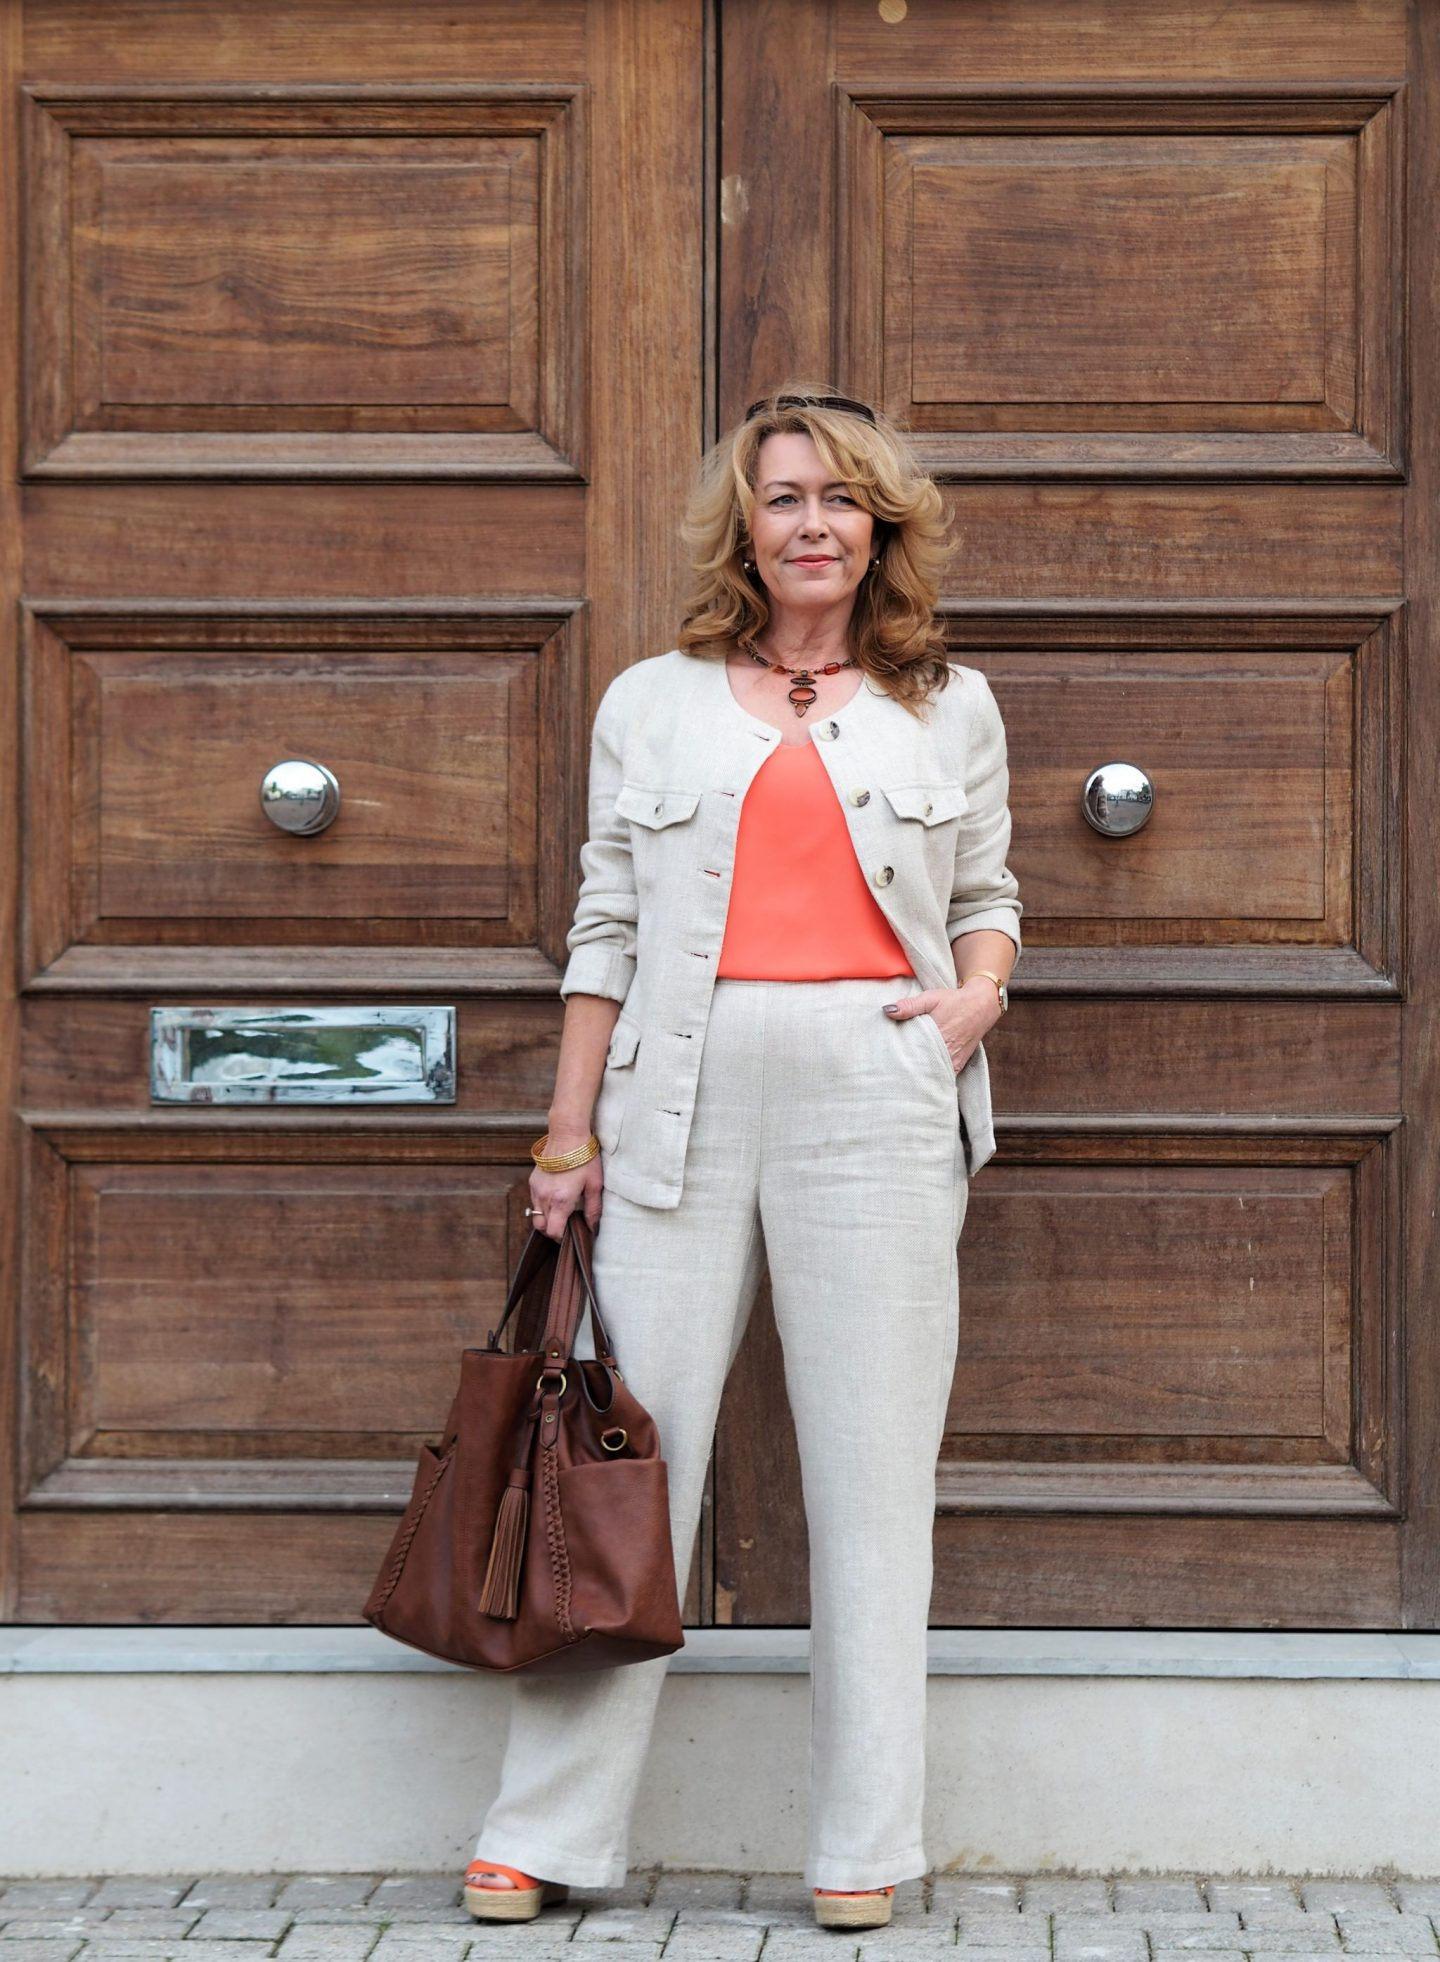 linen suit from Laura ashley